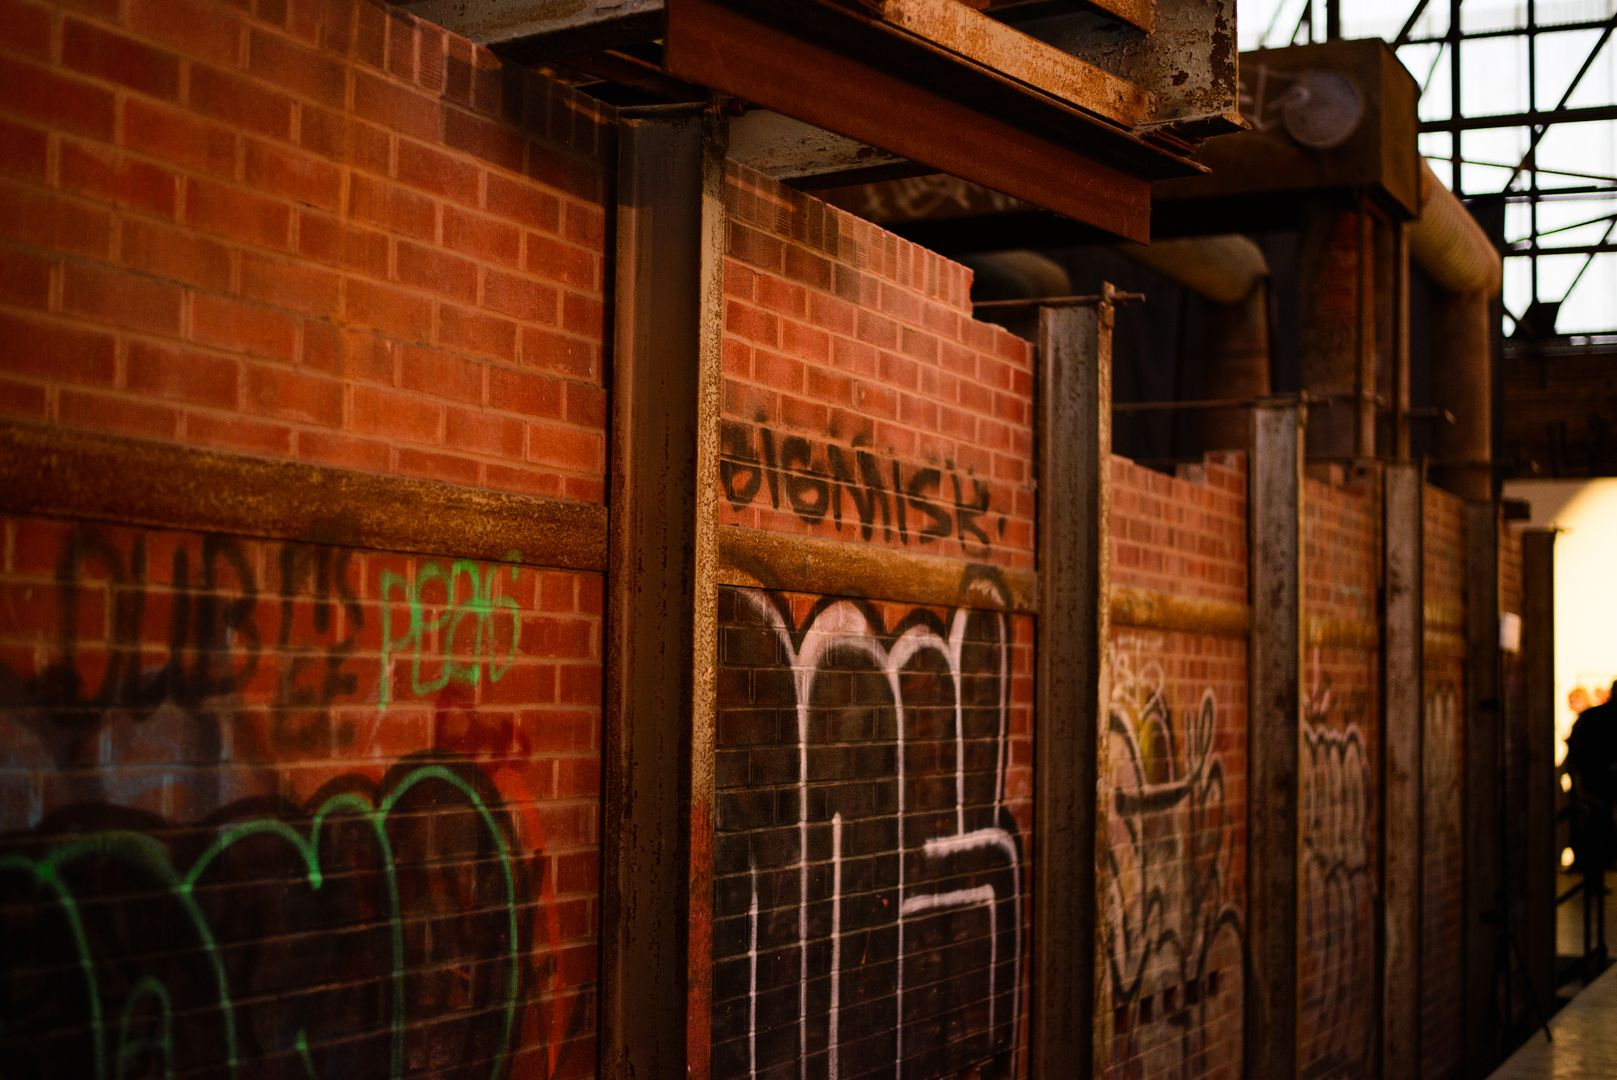 Interior of Evergreen Brick Works with graffiti